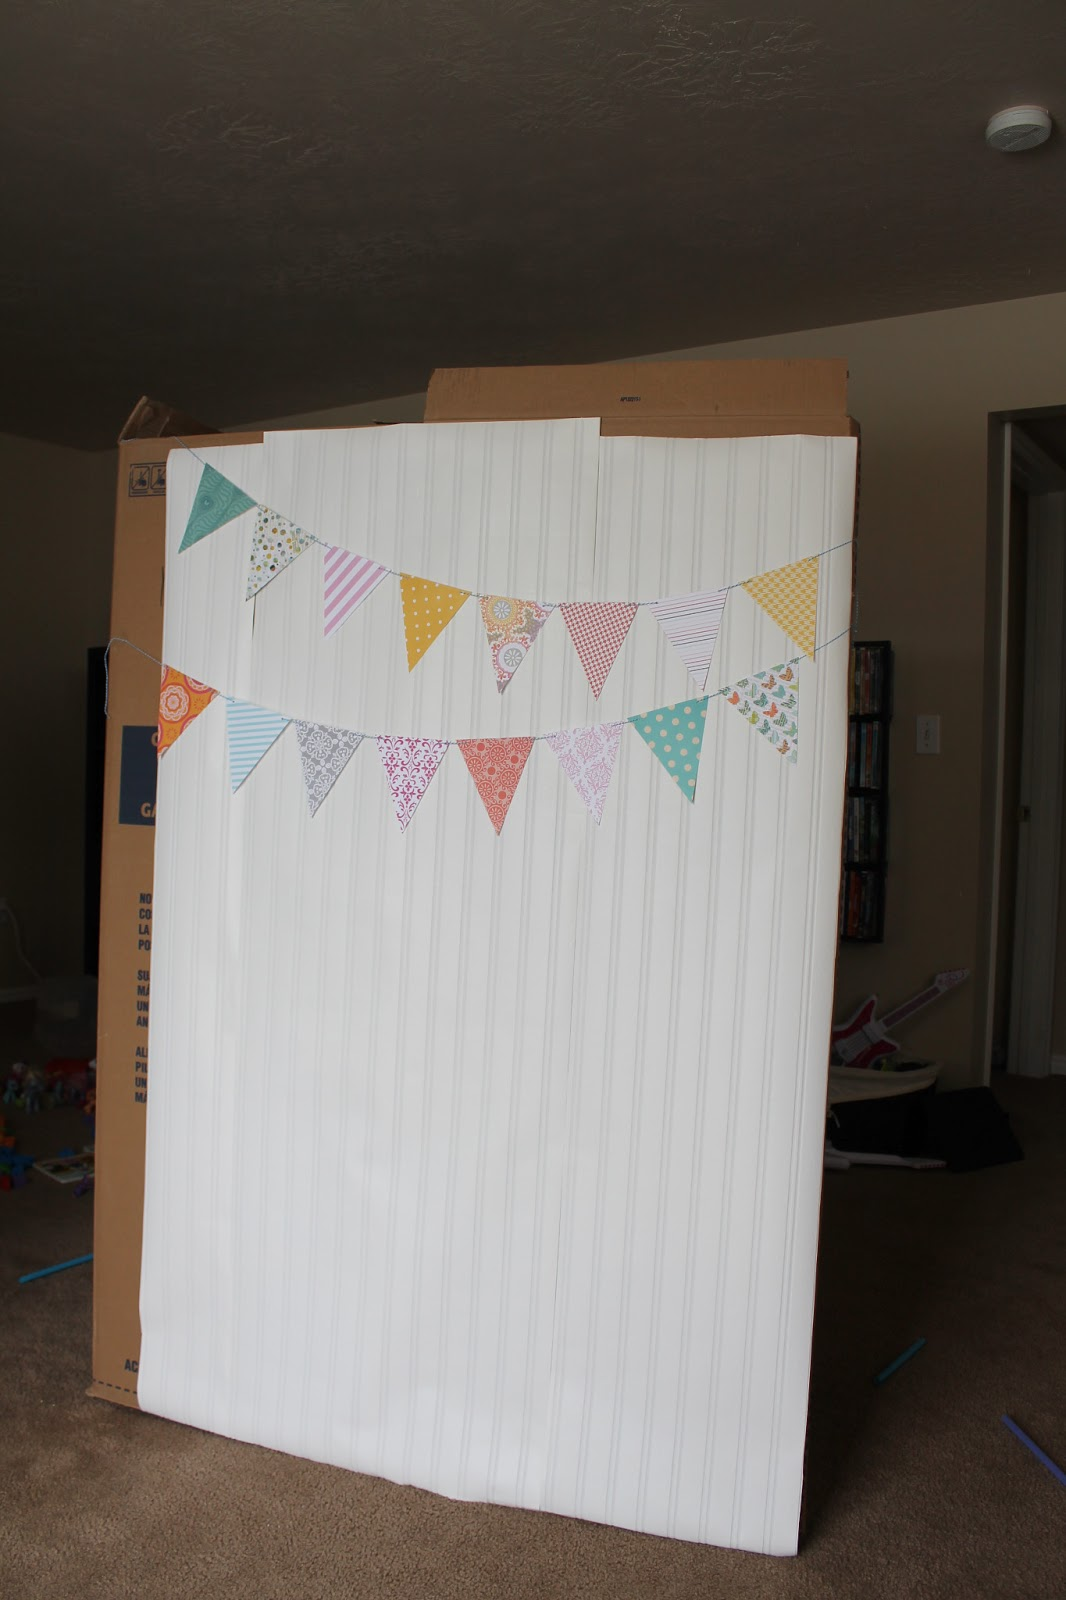 How to make a fabric backdrop - Yes Wallpaper Have You Heard About This It S Going To Make Its Way Onto A Wall Soon But It Works Great As A Backdrop For Now